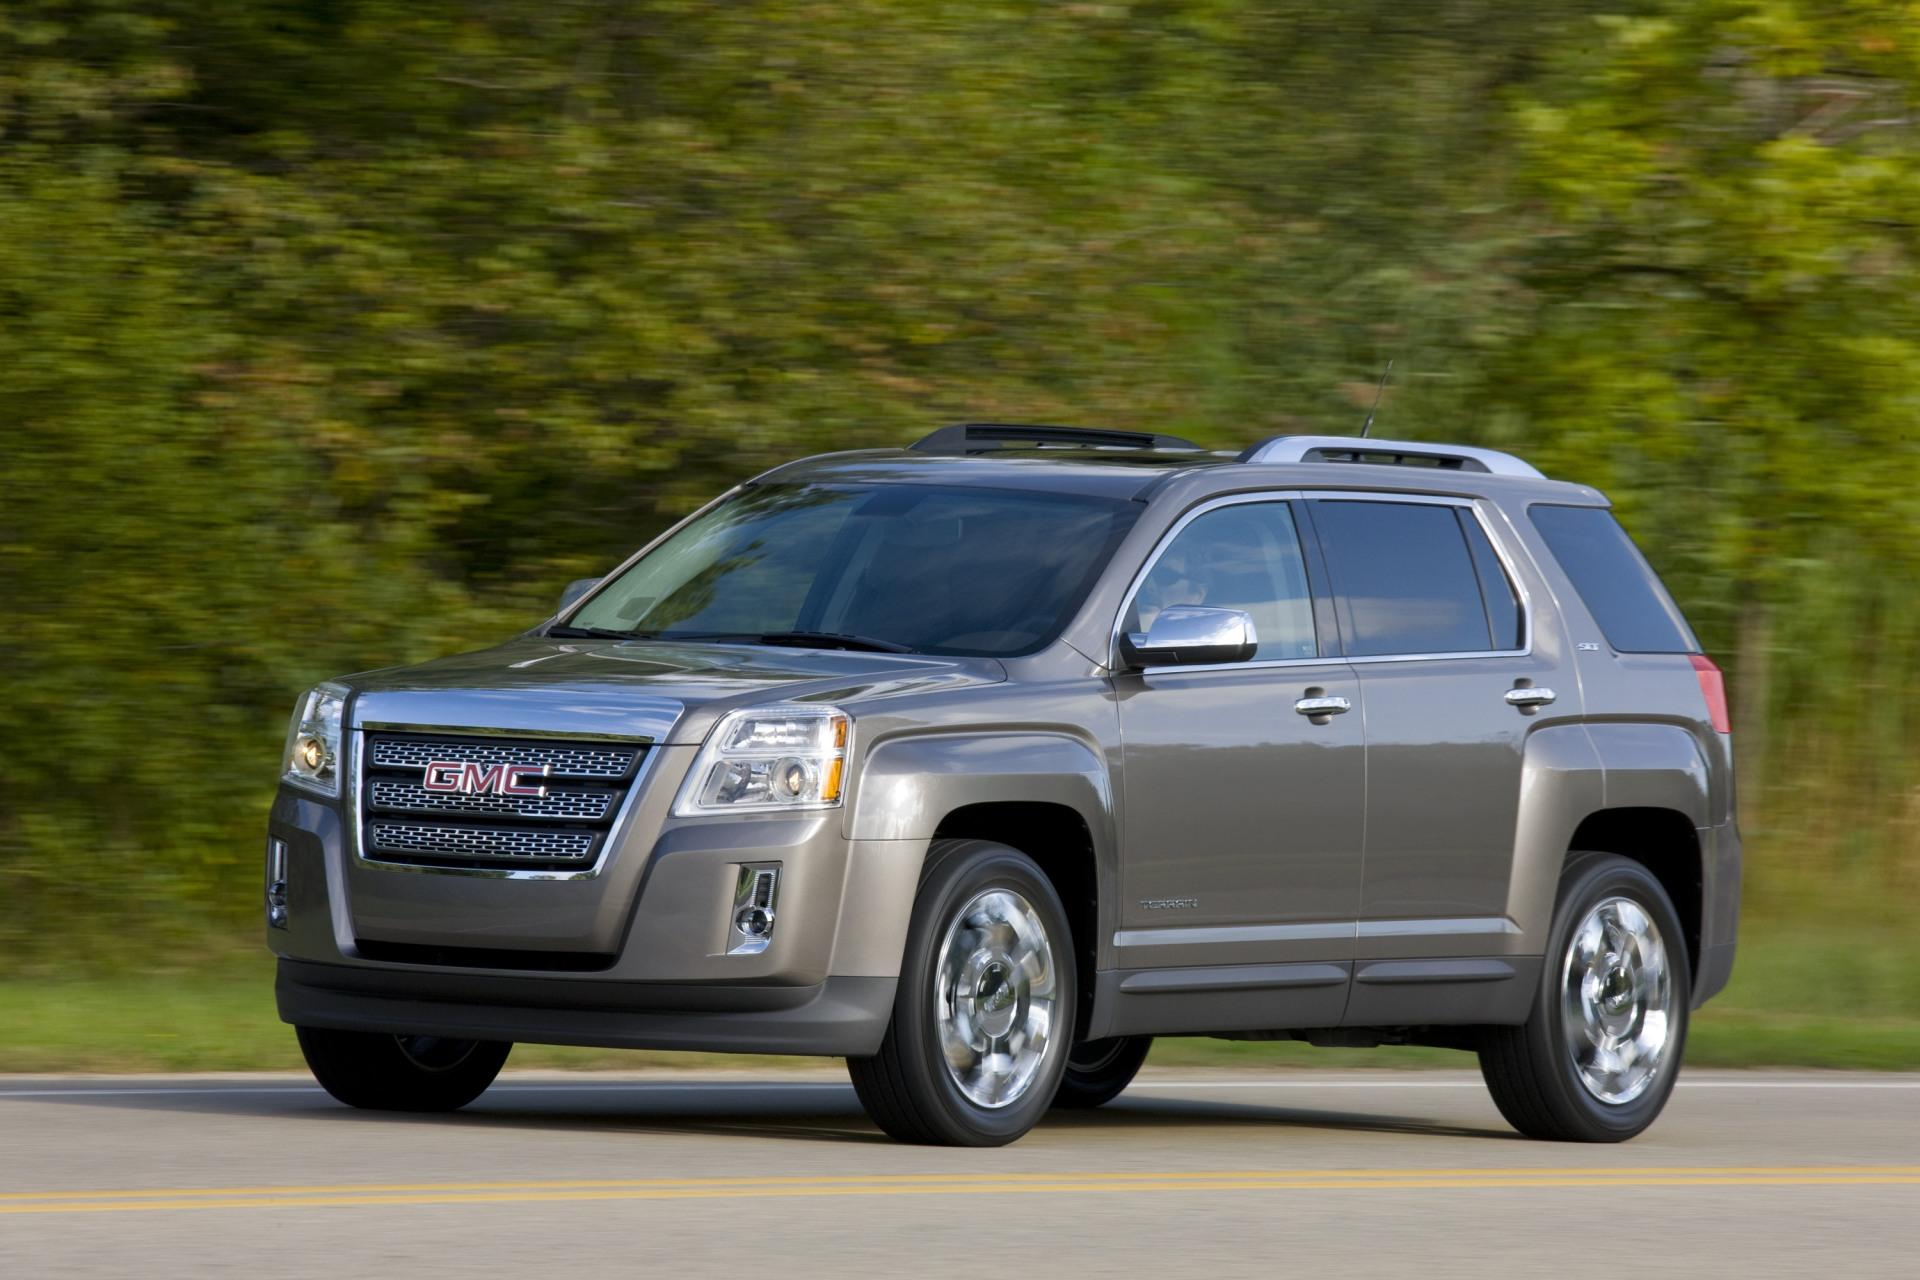 2011 GMC Terrain Technical Specifications and data Engine